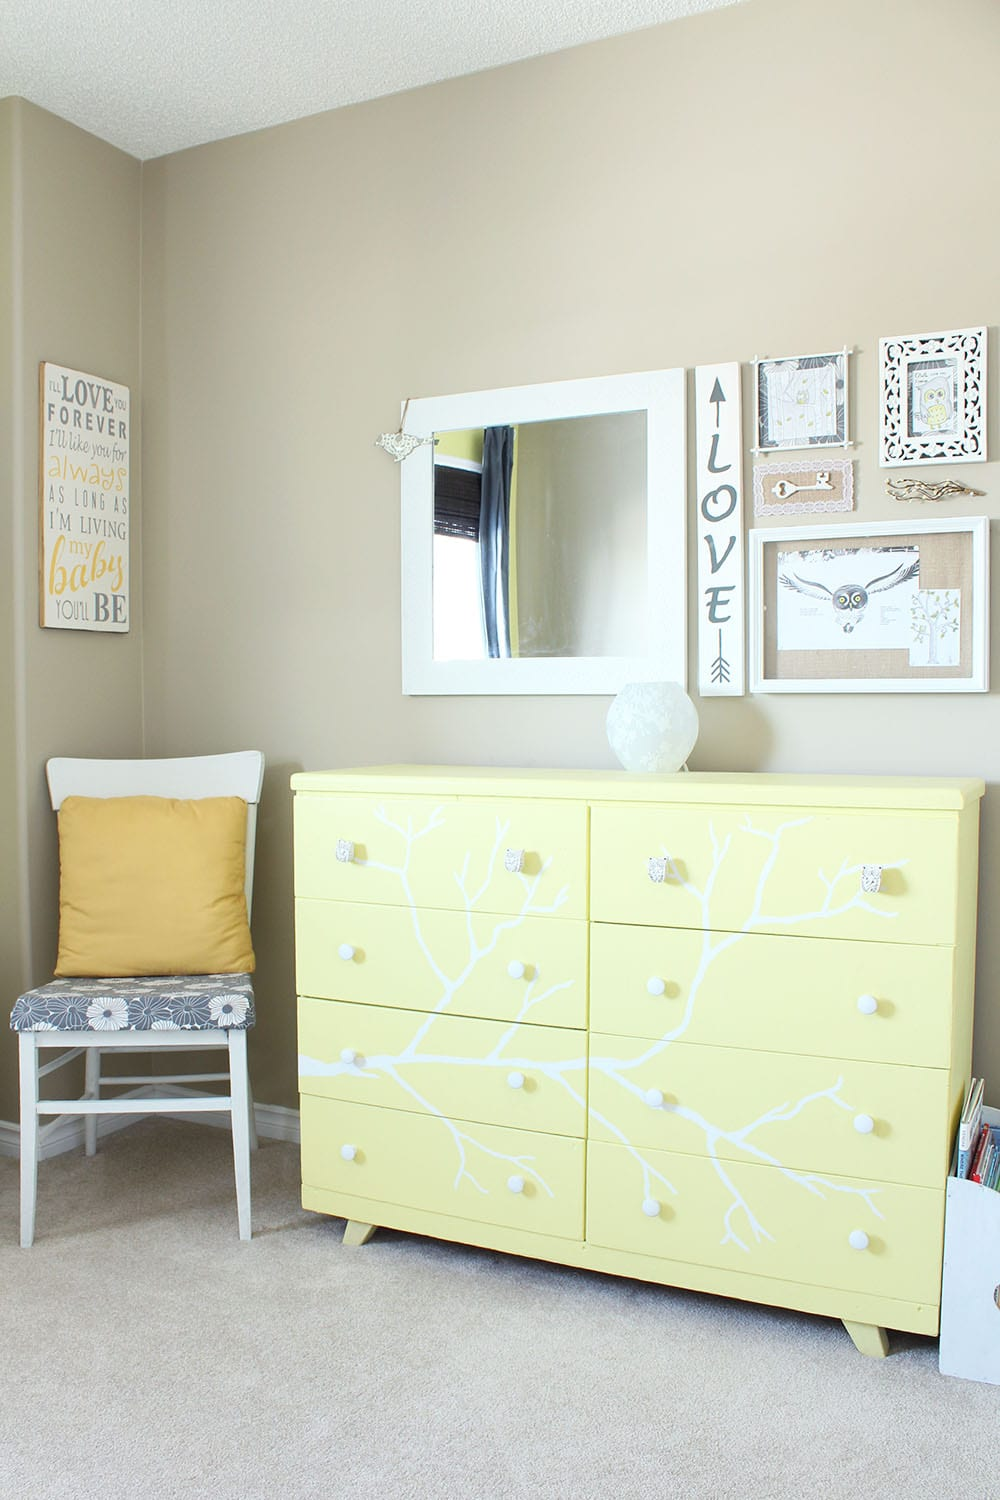 Yellow Toddler Bedroom   Welcome to our yellow toddler bedroom. Featuring grey and white accents and an owl motif. This room is a super happy fun place for a cute and quirky kid!